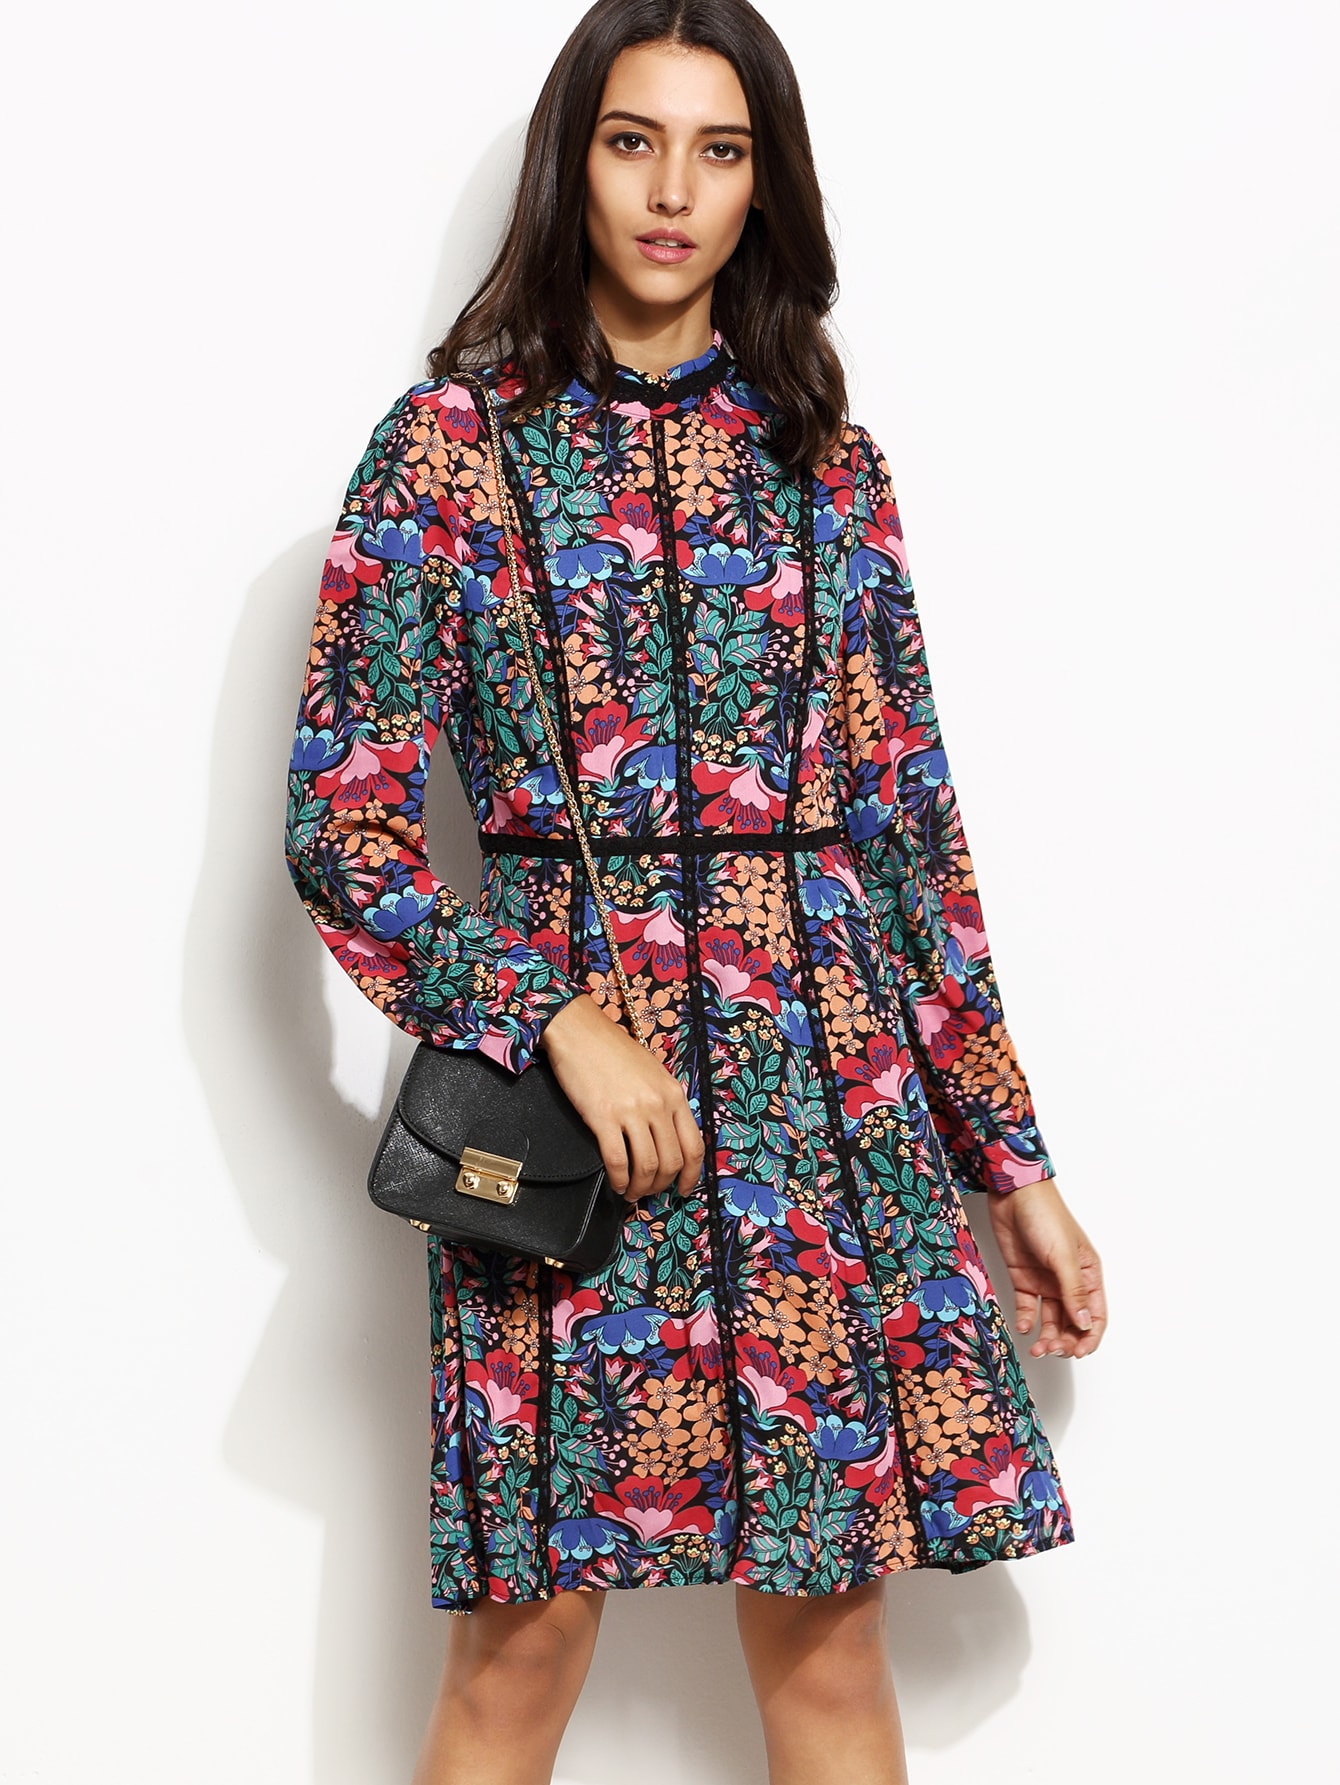 Multicolor Floral Print Lace Trim Long Sleeve DressMulticolor Floral Print Lace Trim Long Sleeve Dress<br><br>color: Multicolor<br>size: S